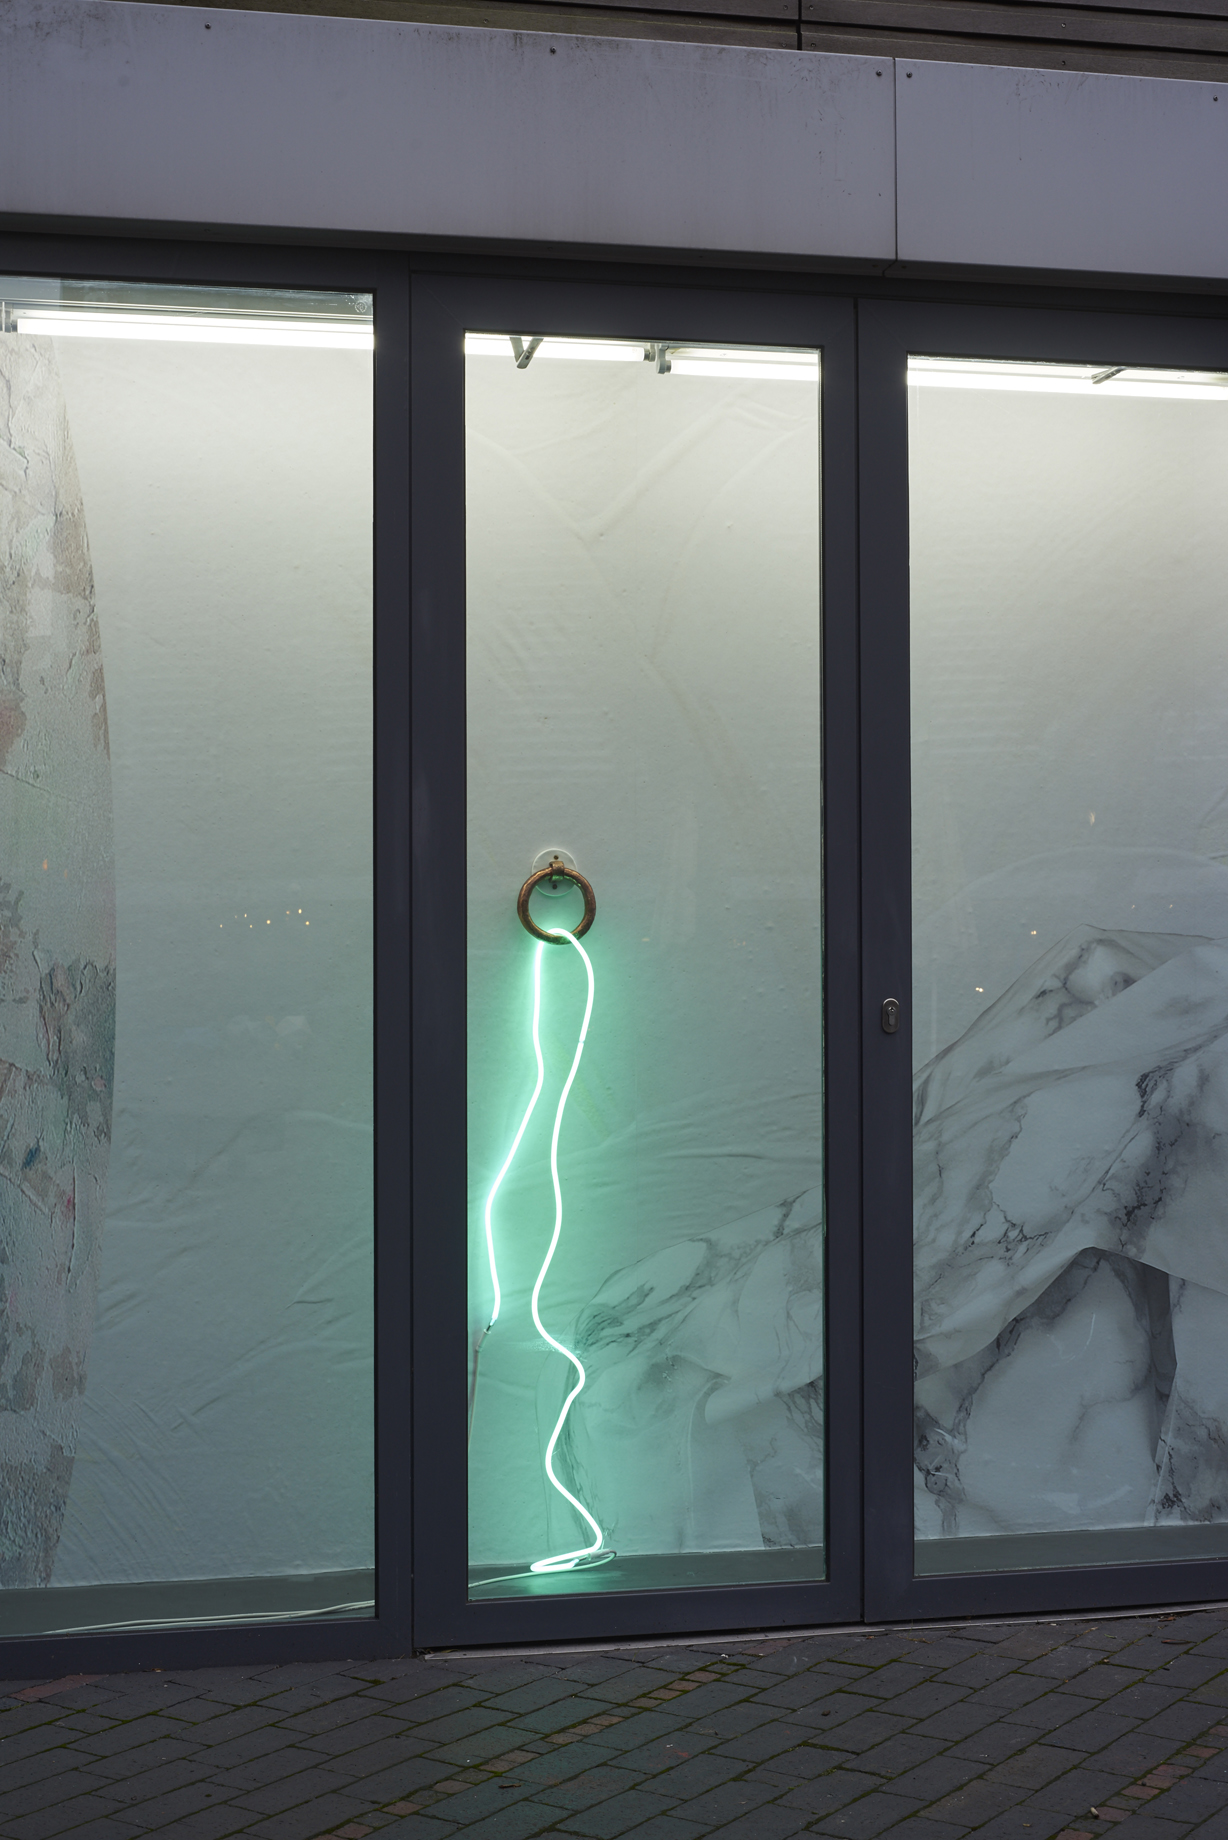 Clare Kenny, Enough rope to hang 'emselves (green), 2016. Neon, bronze, wood, acrystal, paint. 143 x 24 x 19 cm; form follows fiction follows fact follows form, 2016. Printed wallpaper. 243 x 1546 cm. Edition 3 (+ 1 AP). Photographer: Jonathan Bassett.